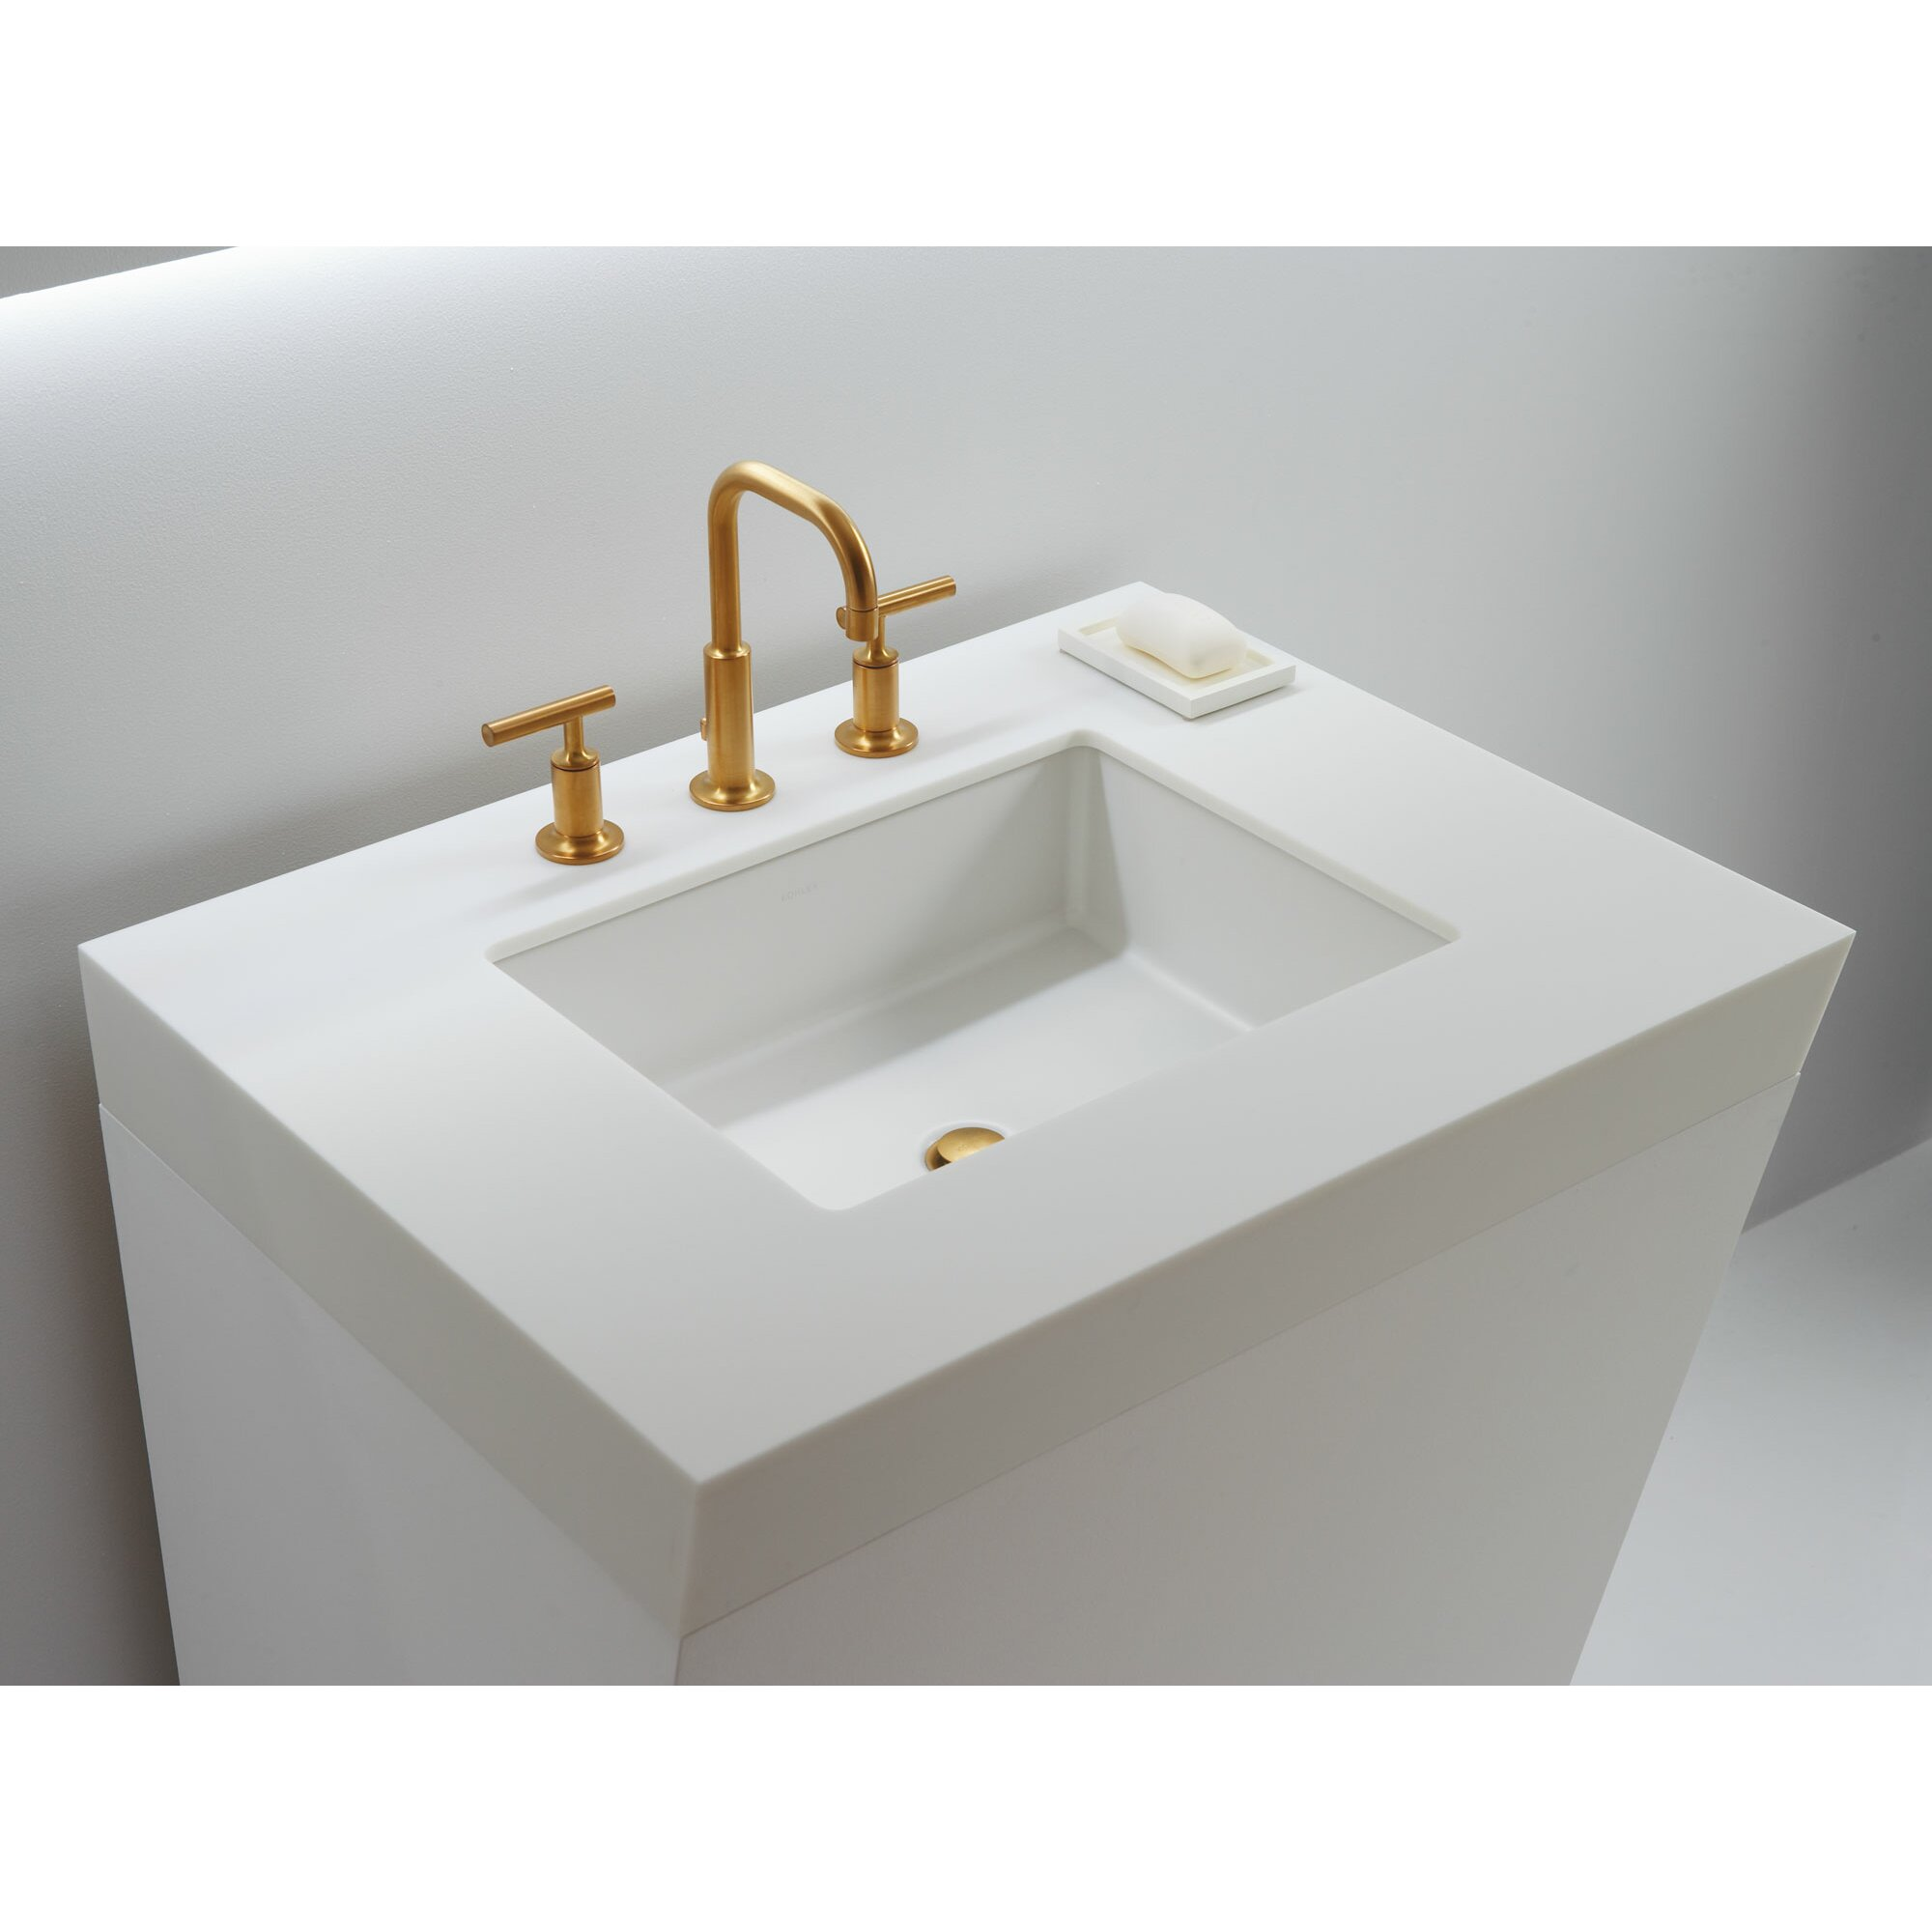 Verticyl rectangular undermount bathroom sink with for Bathroom undermount sinks